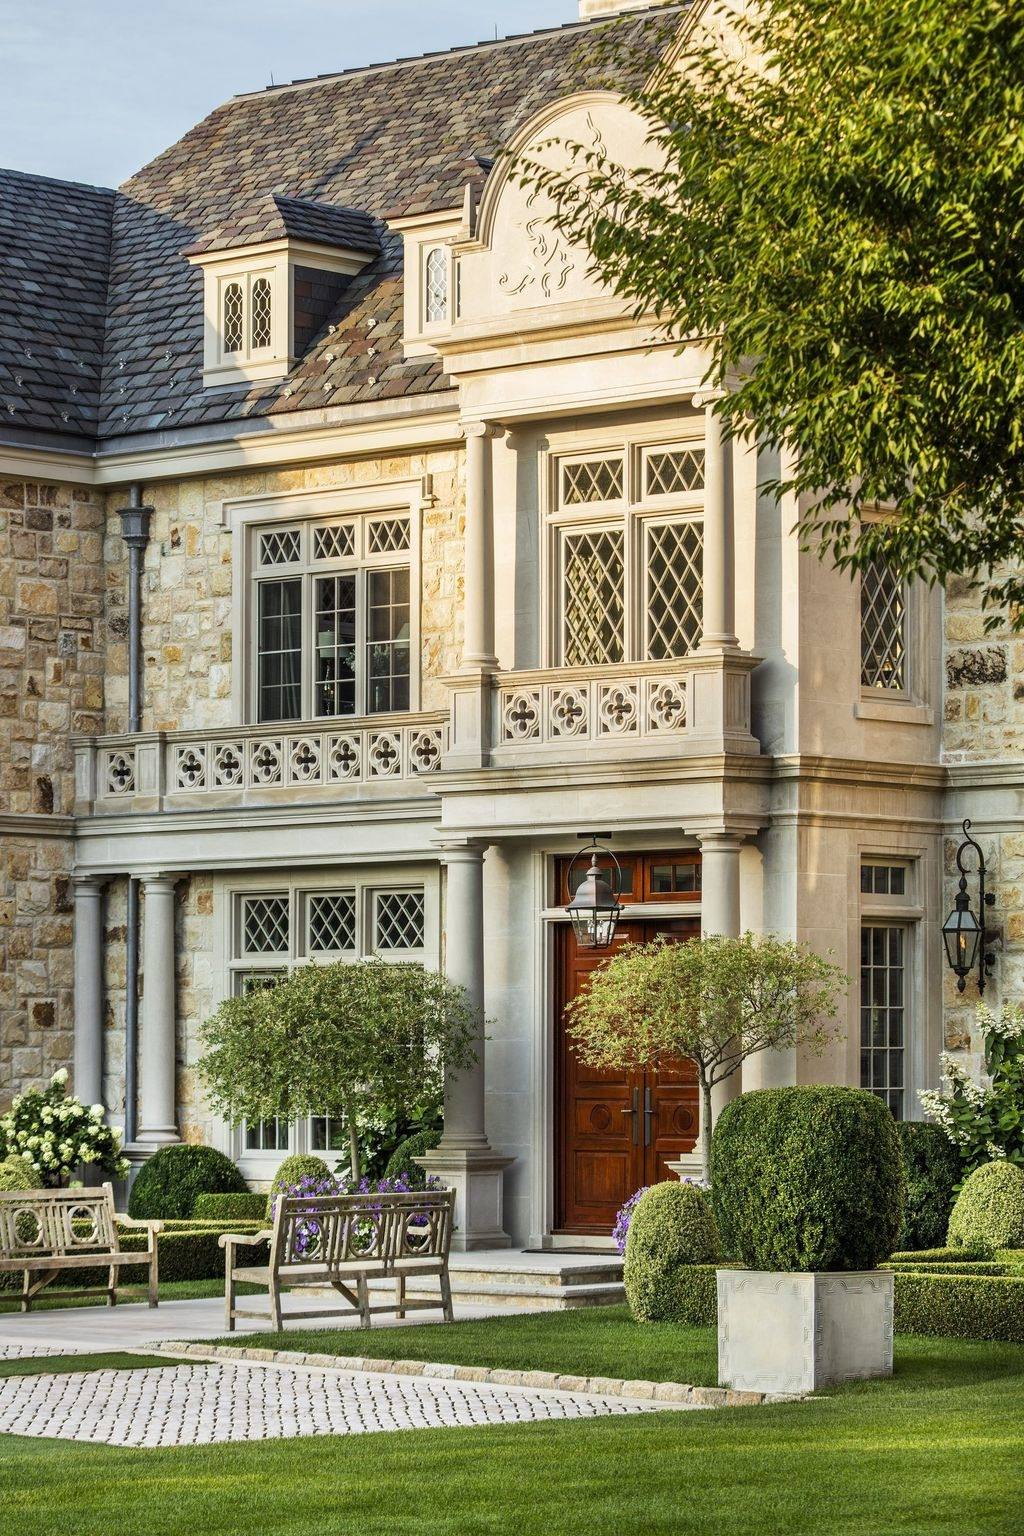 Stylish French Country Exterior For Your Home Design Inspiration 41